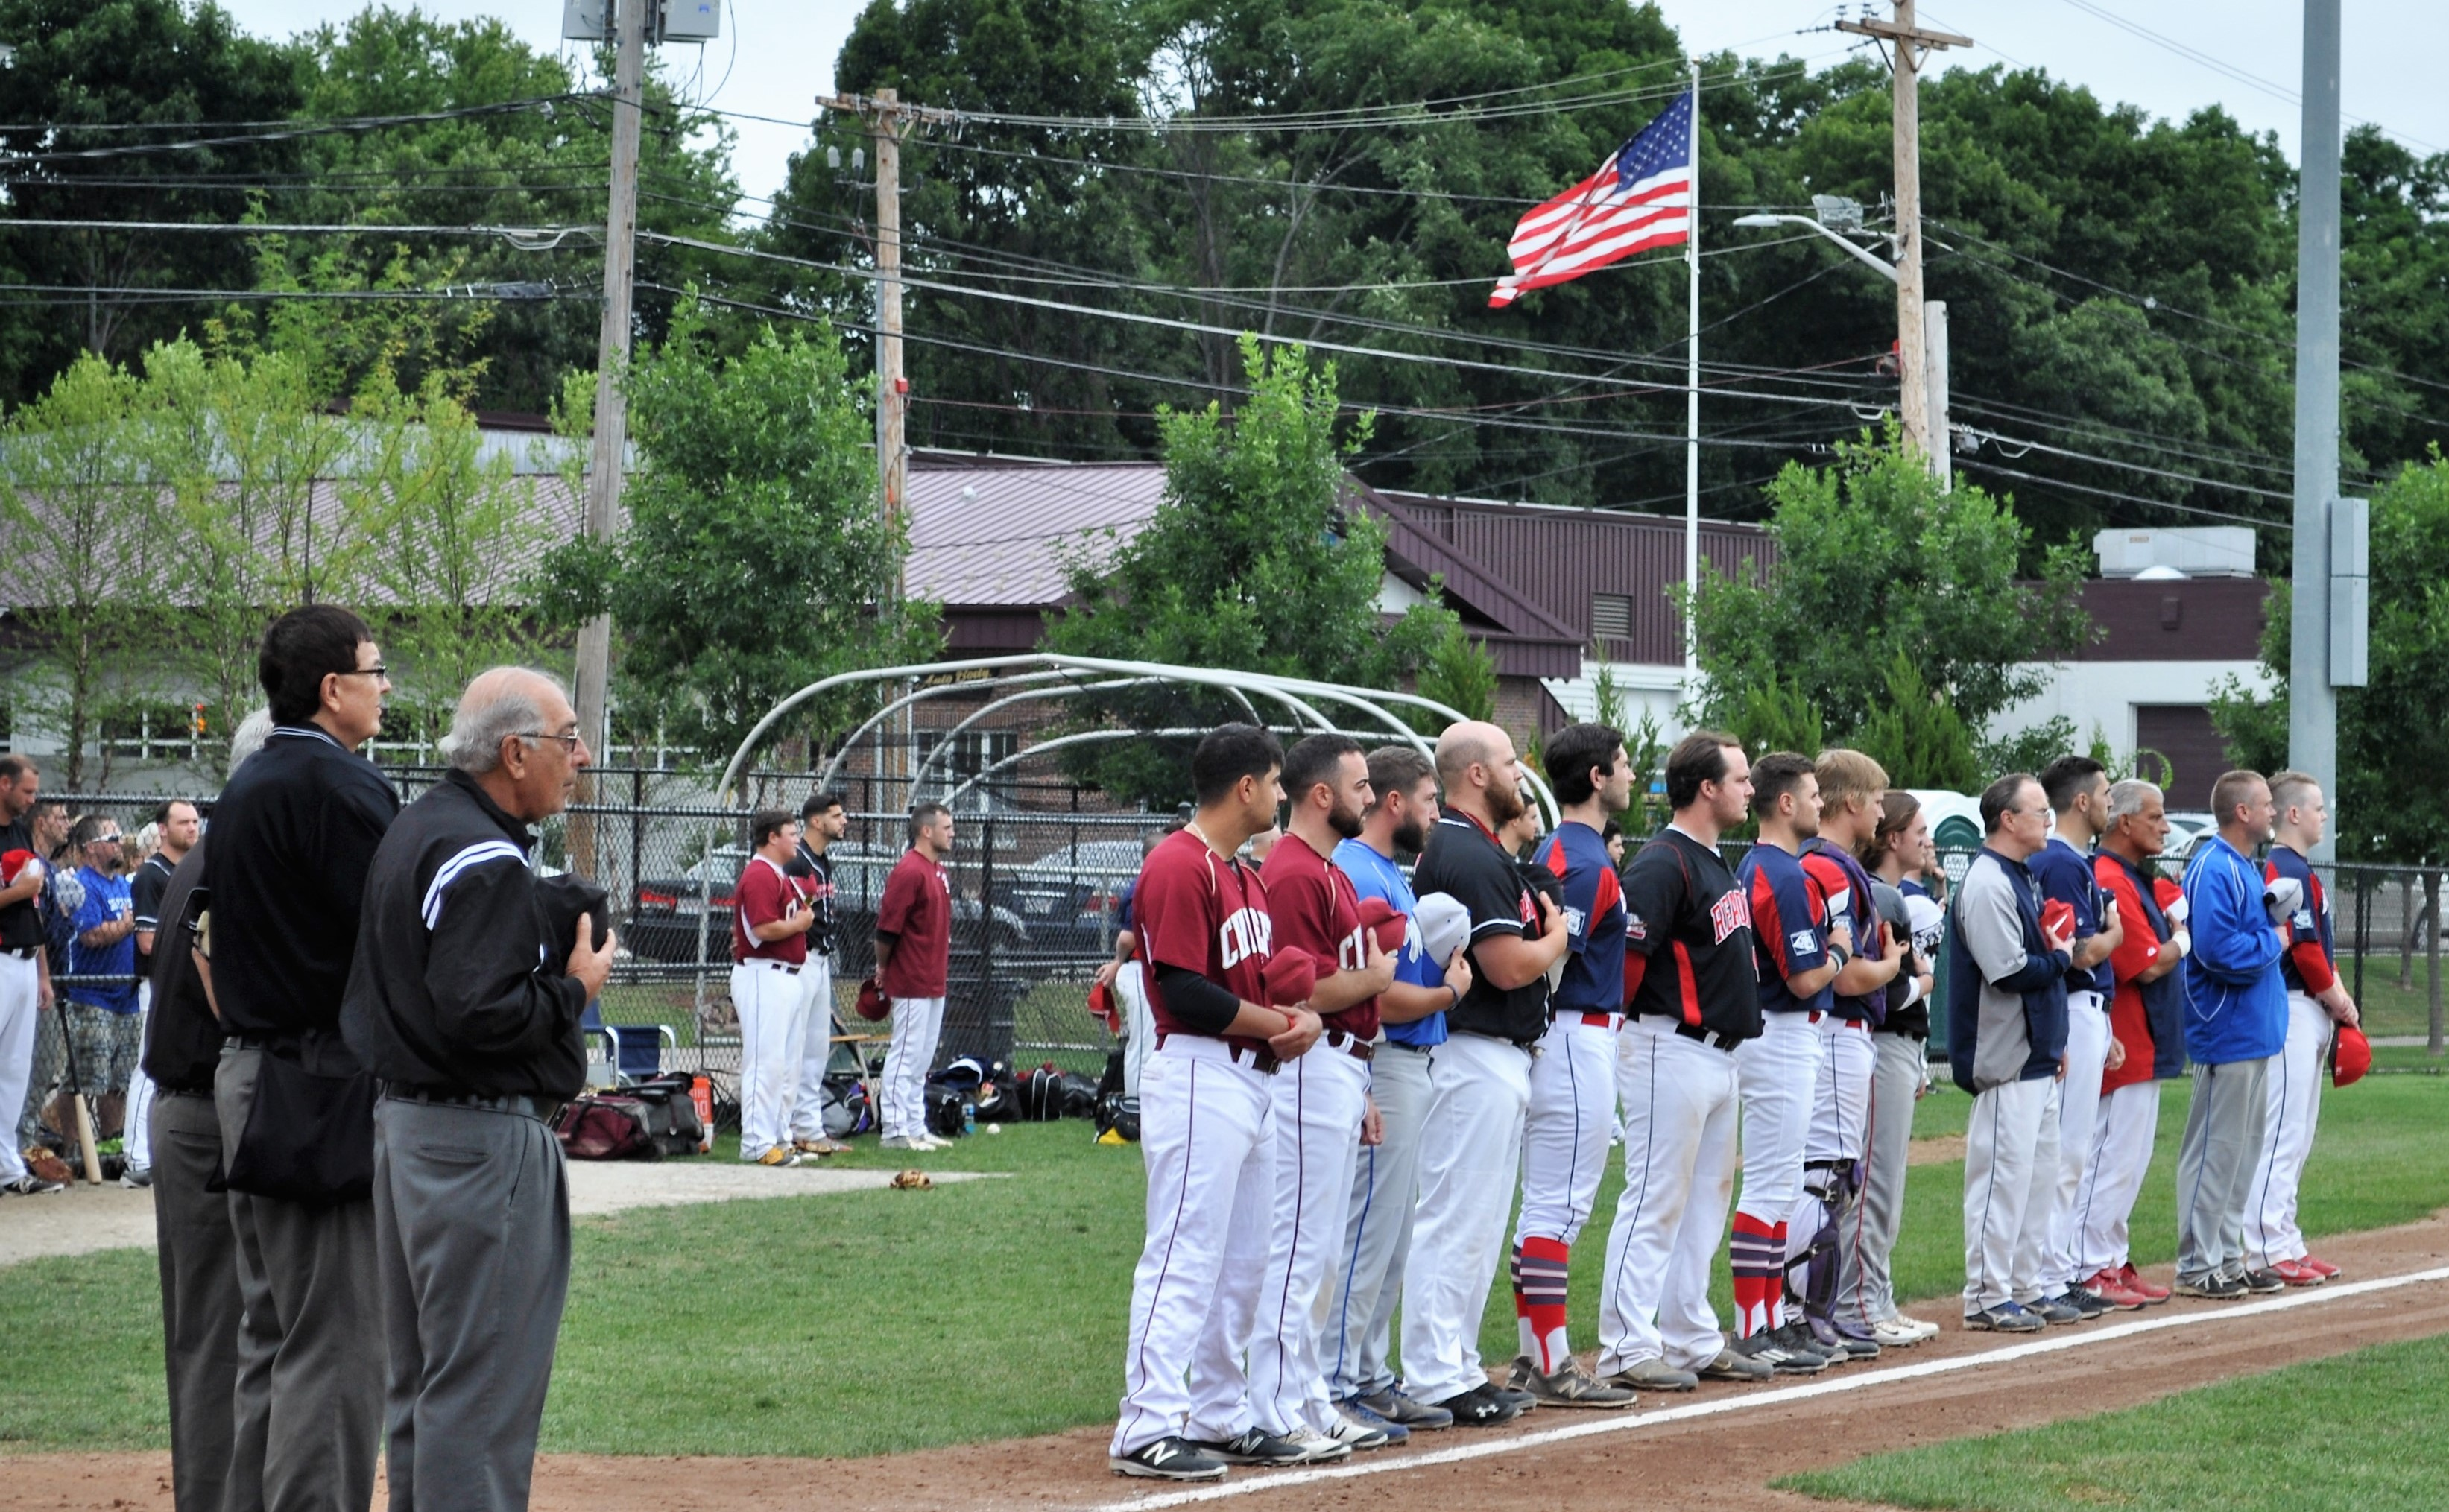 2016 ICL All-Stars lineup for national anthem.